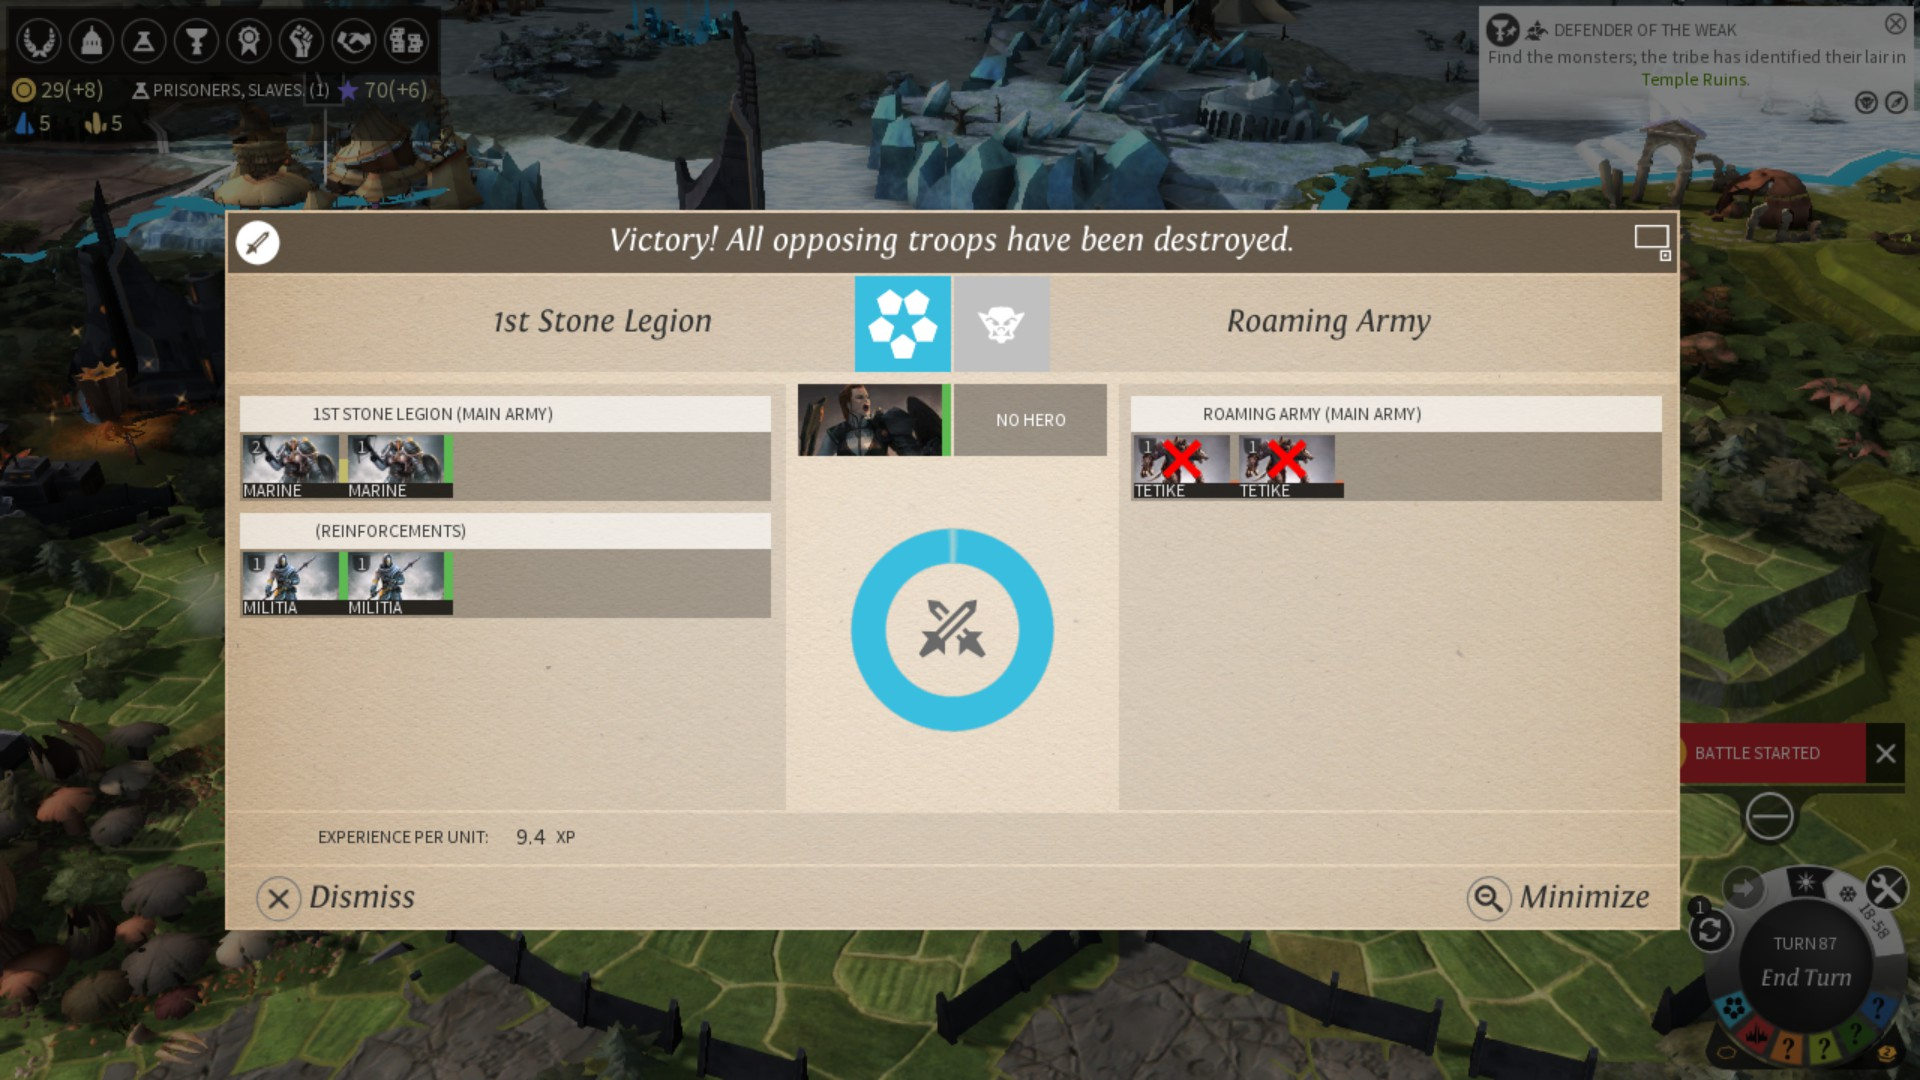 You can also auto-resolve or spectate your armies controlled by the game's AI. Direct control is still advised though.